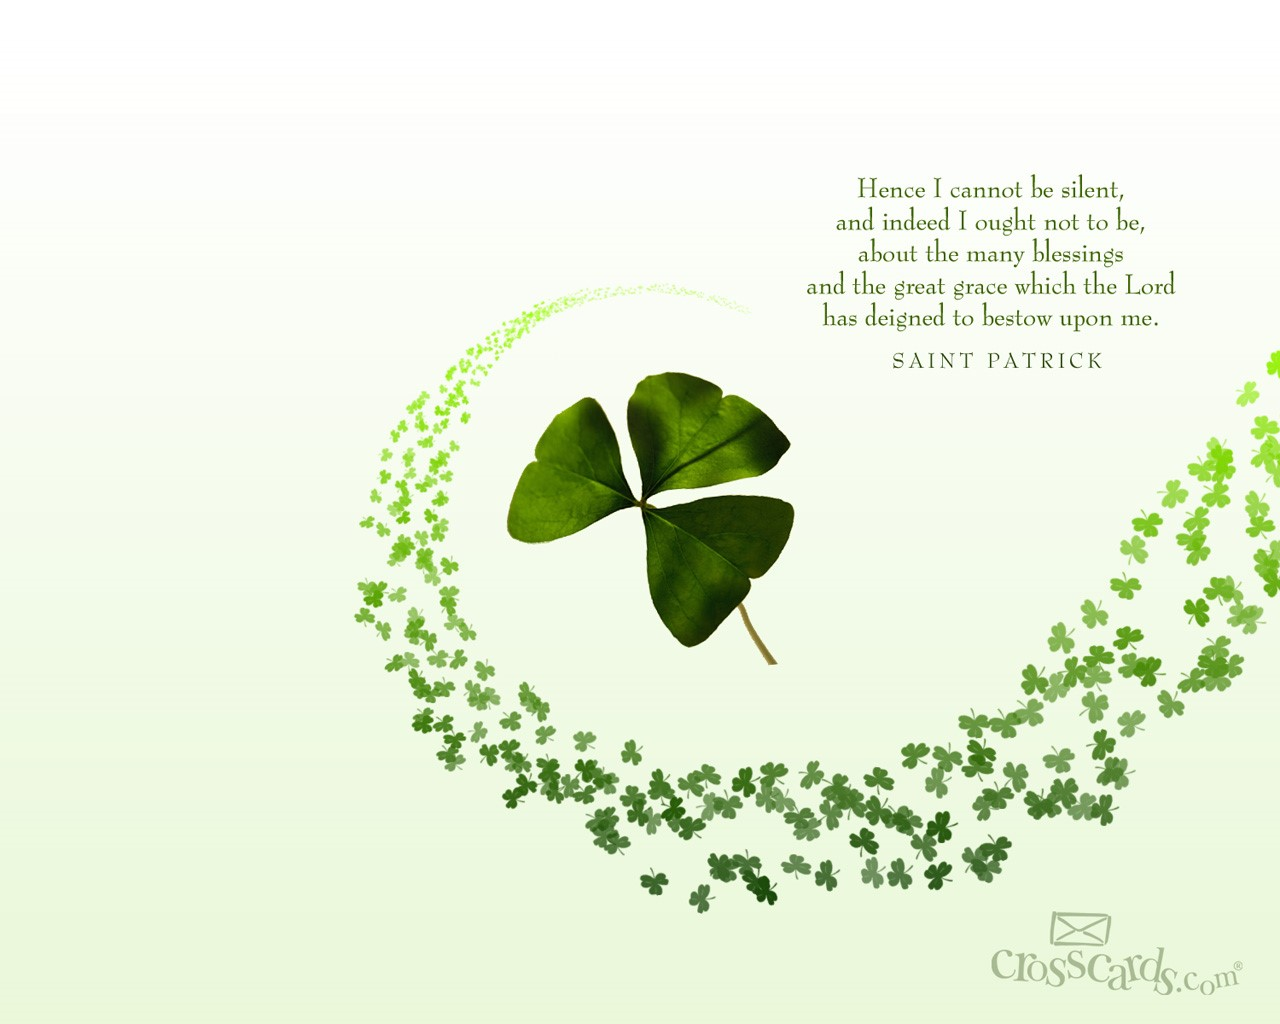 Free-St-Patricks-Day-Best-Images-Collections-HD-For-%C3%971080-Free-St-Patrick-Day-Wallpa-wallpaper-wpc9005290